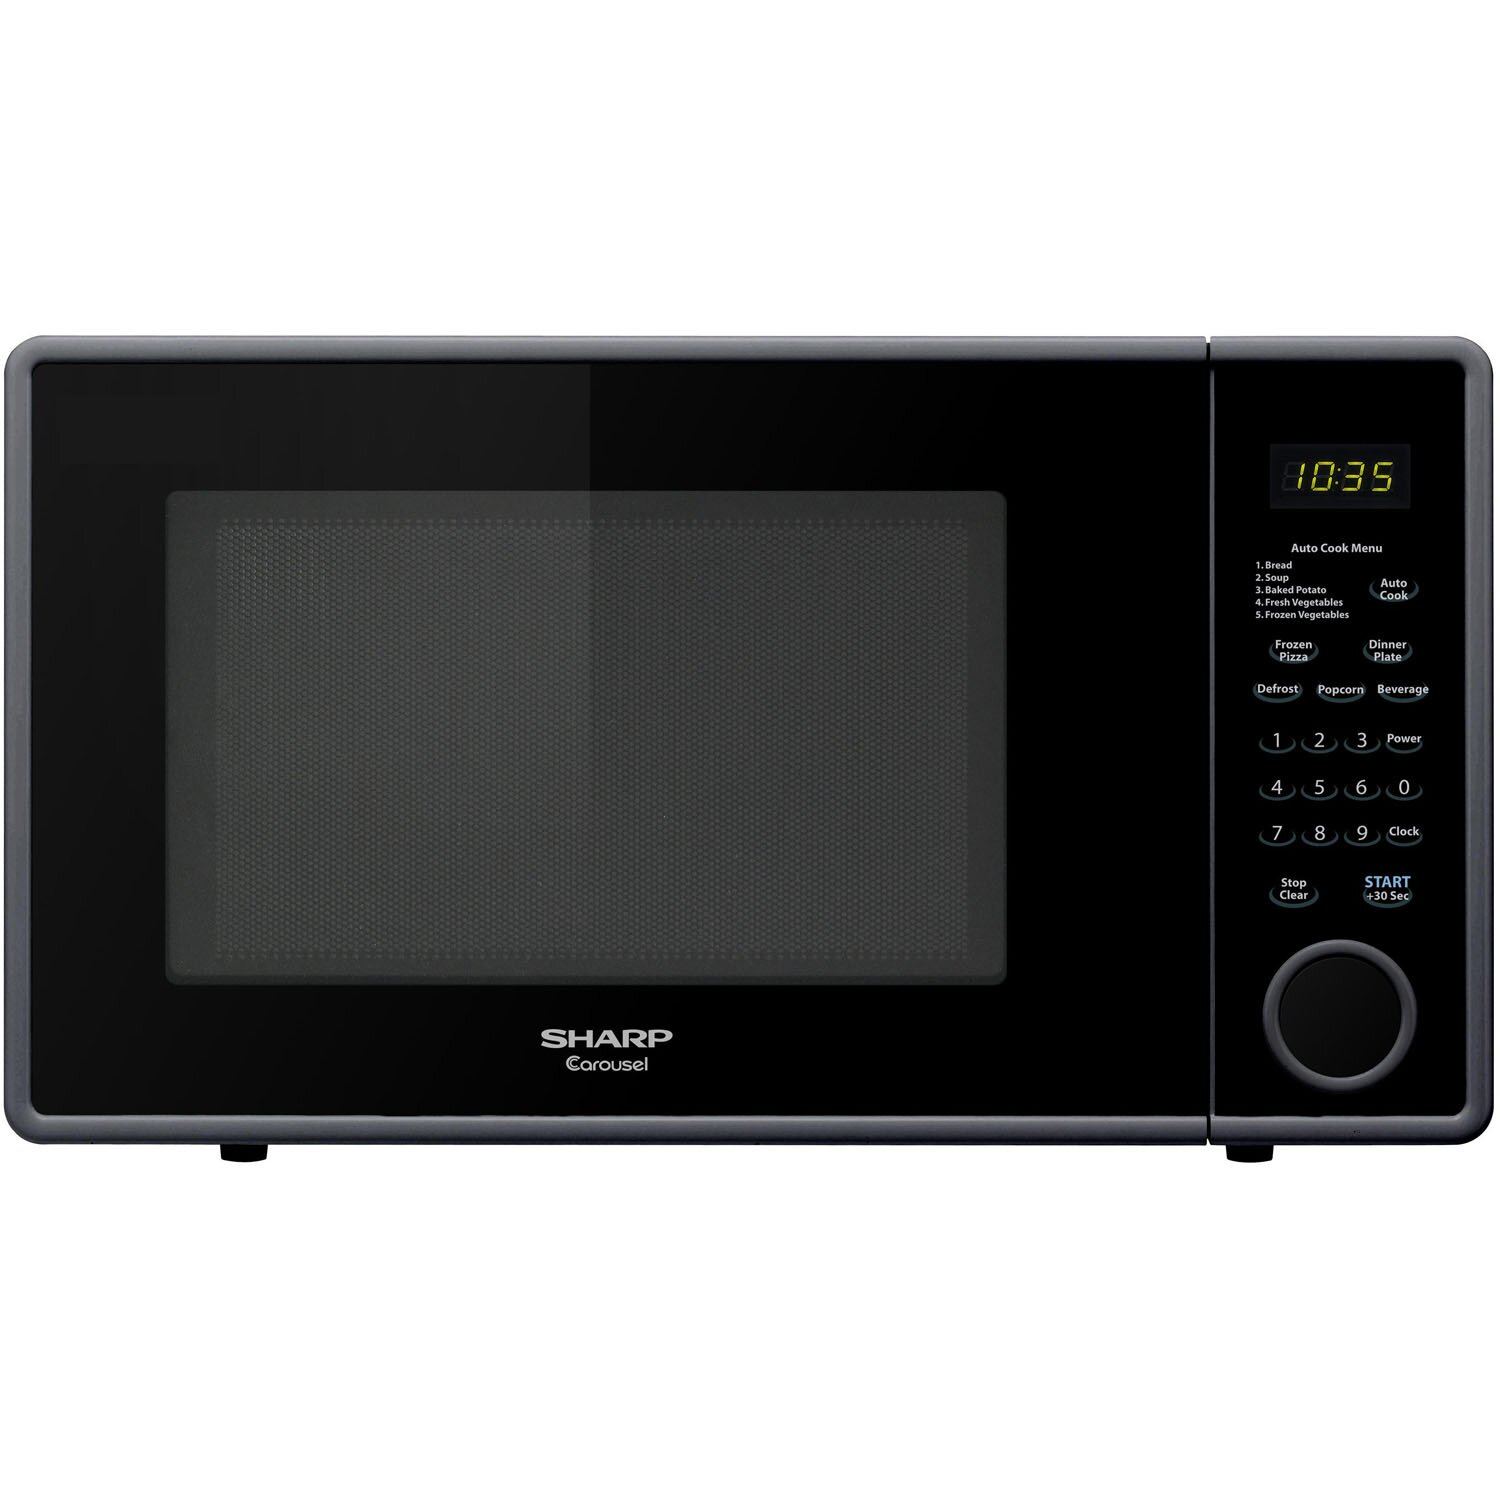 Countertop Microwave At Best Buy : Sharp 1.1 Cu. Ft. 1000W Countertop Microwave